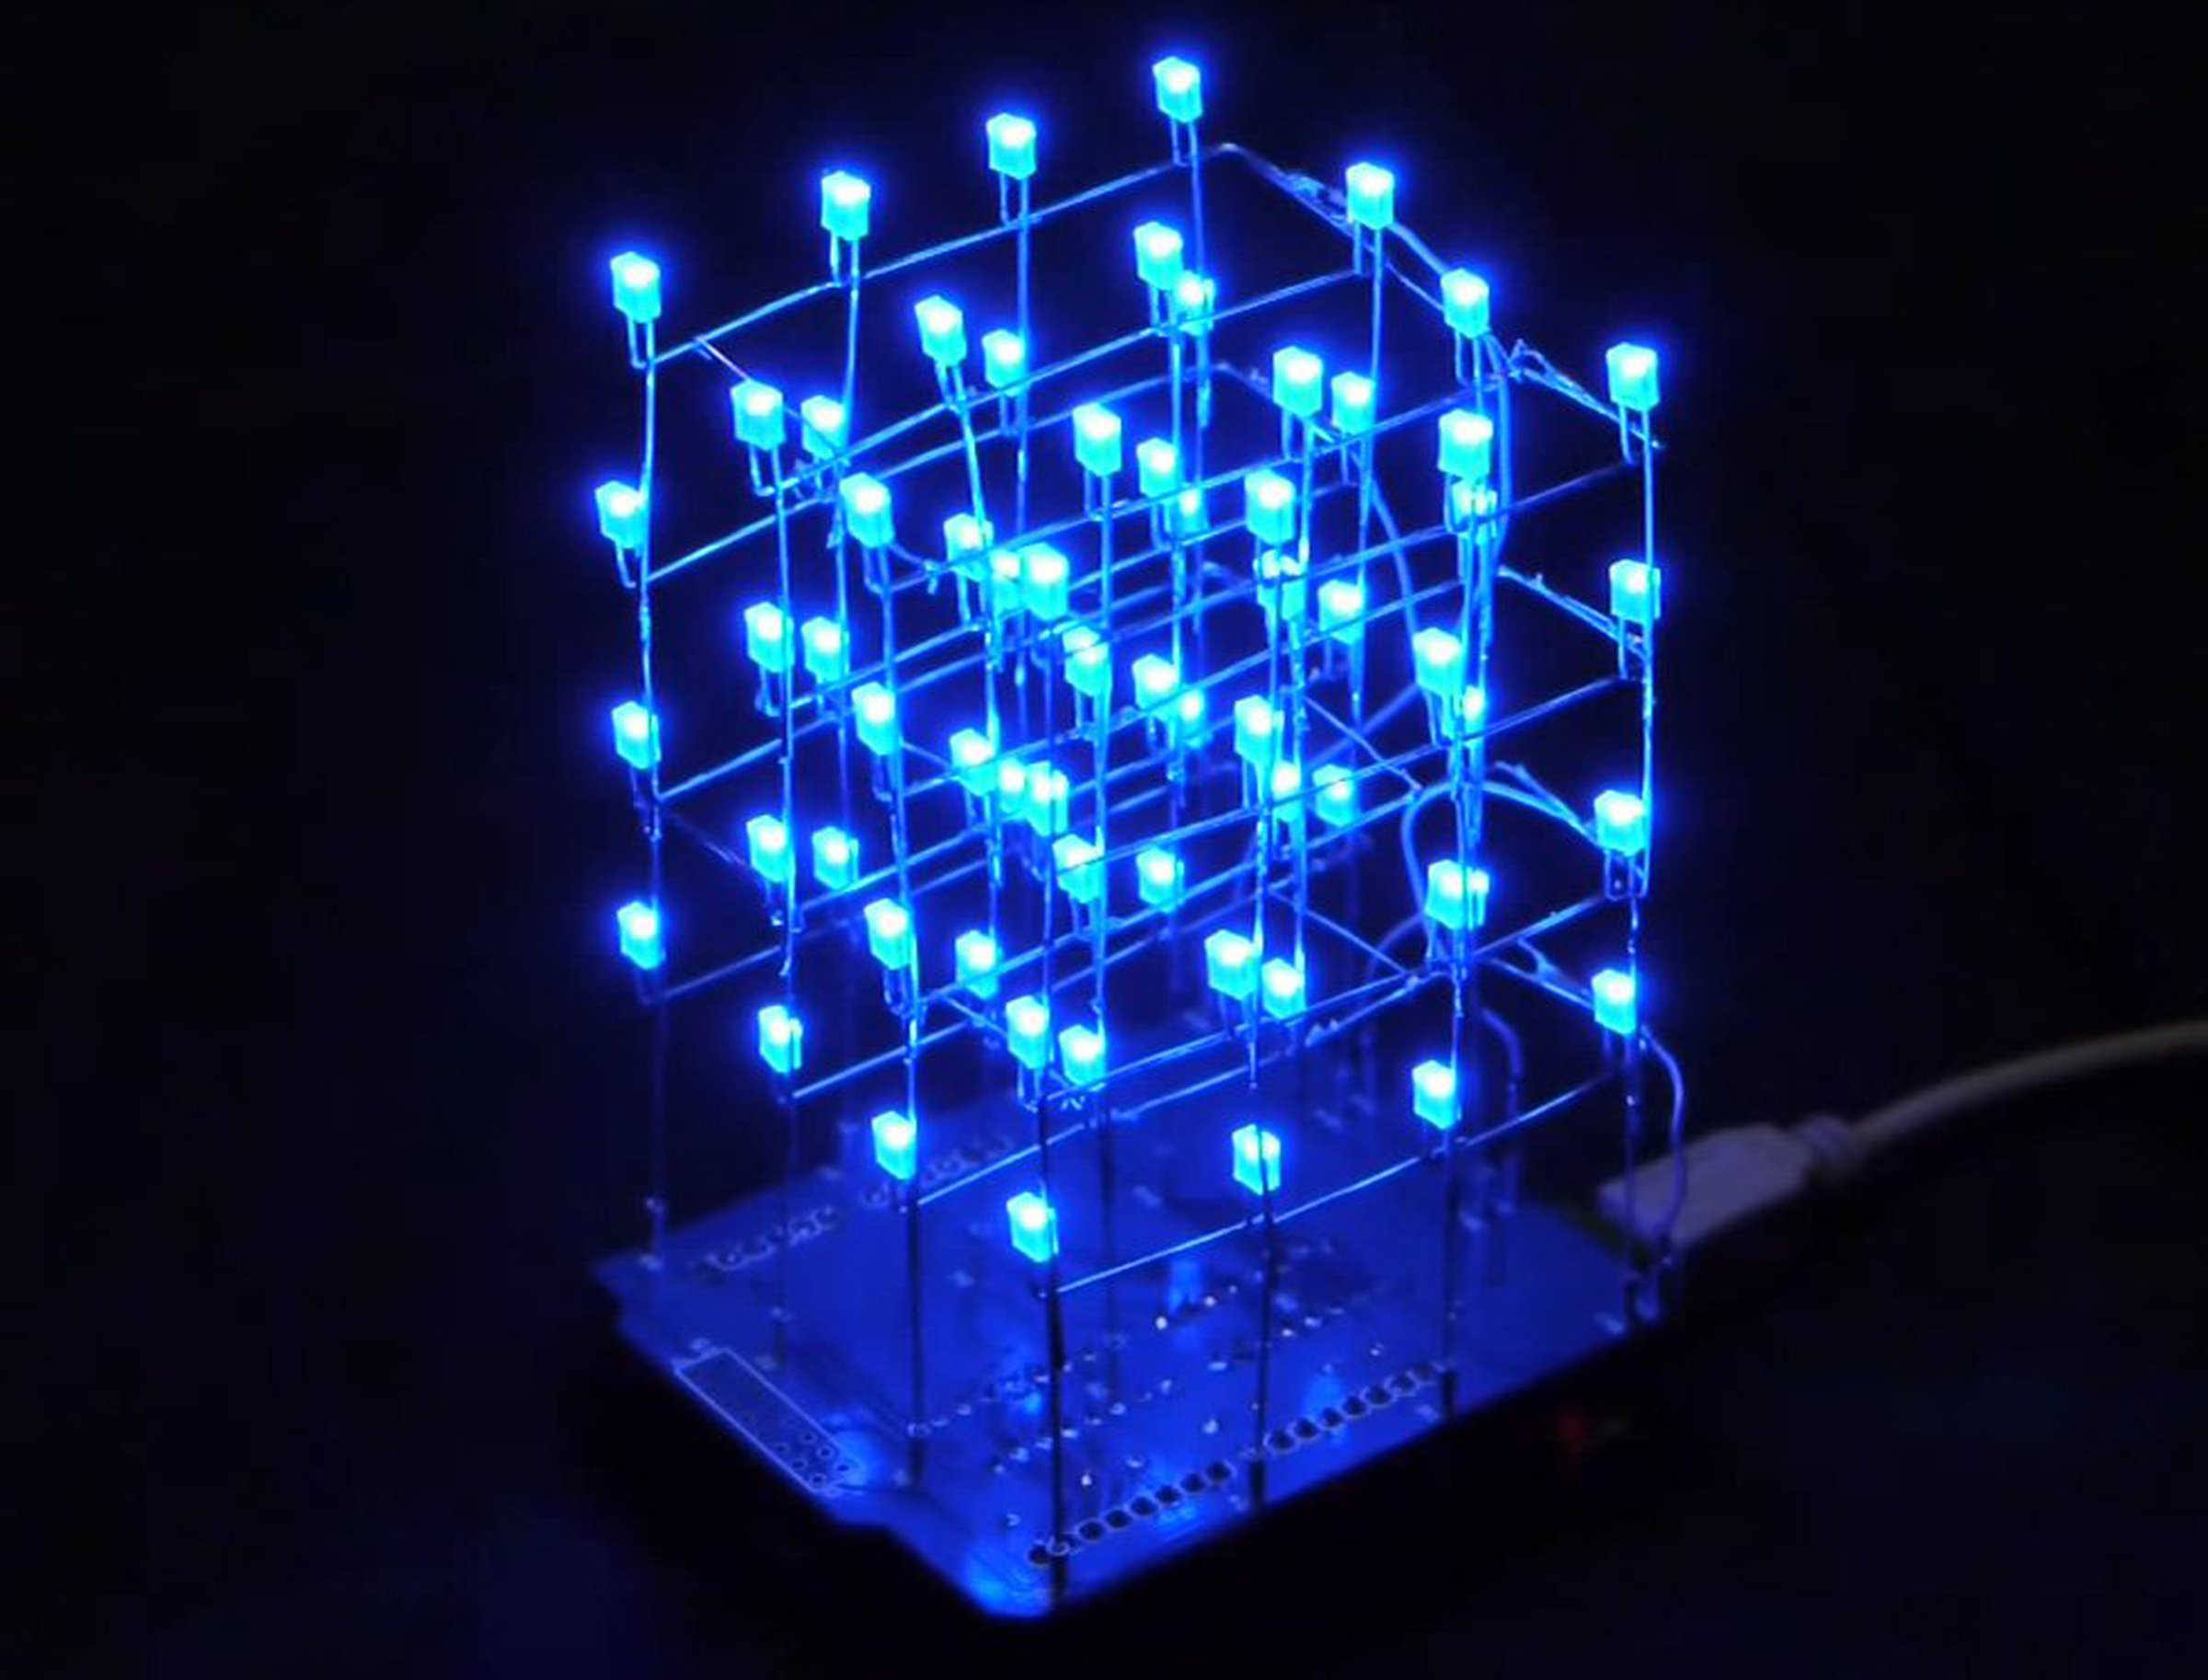 icstation 4x4x4 light cube kit for arduino 5312 from icstation on tindie. Black Bedroom Furniture Sets. Home Design Ideas